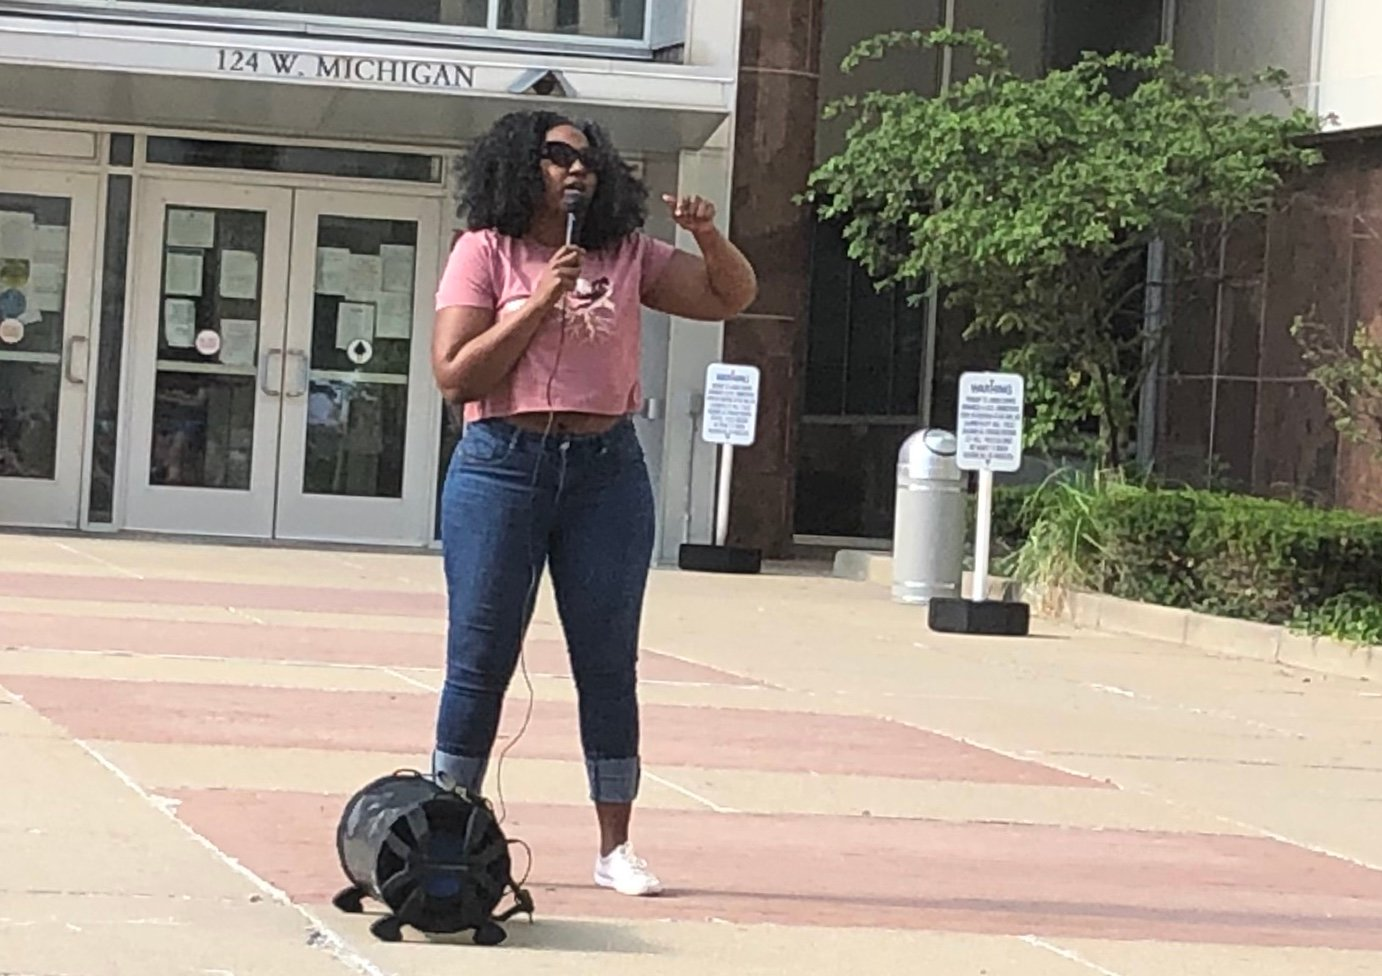 Natasha Atkinson, speaking here at a Black Lives Matter rally in front of City Hall in Lansing, was fired from the Mayor's Office in February, even though there is no written record of performance issues.